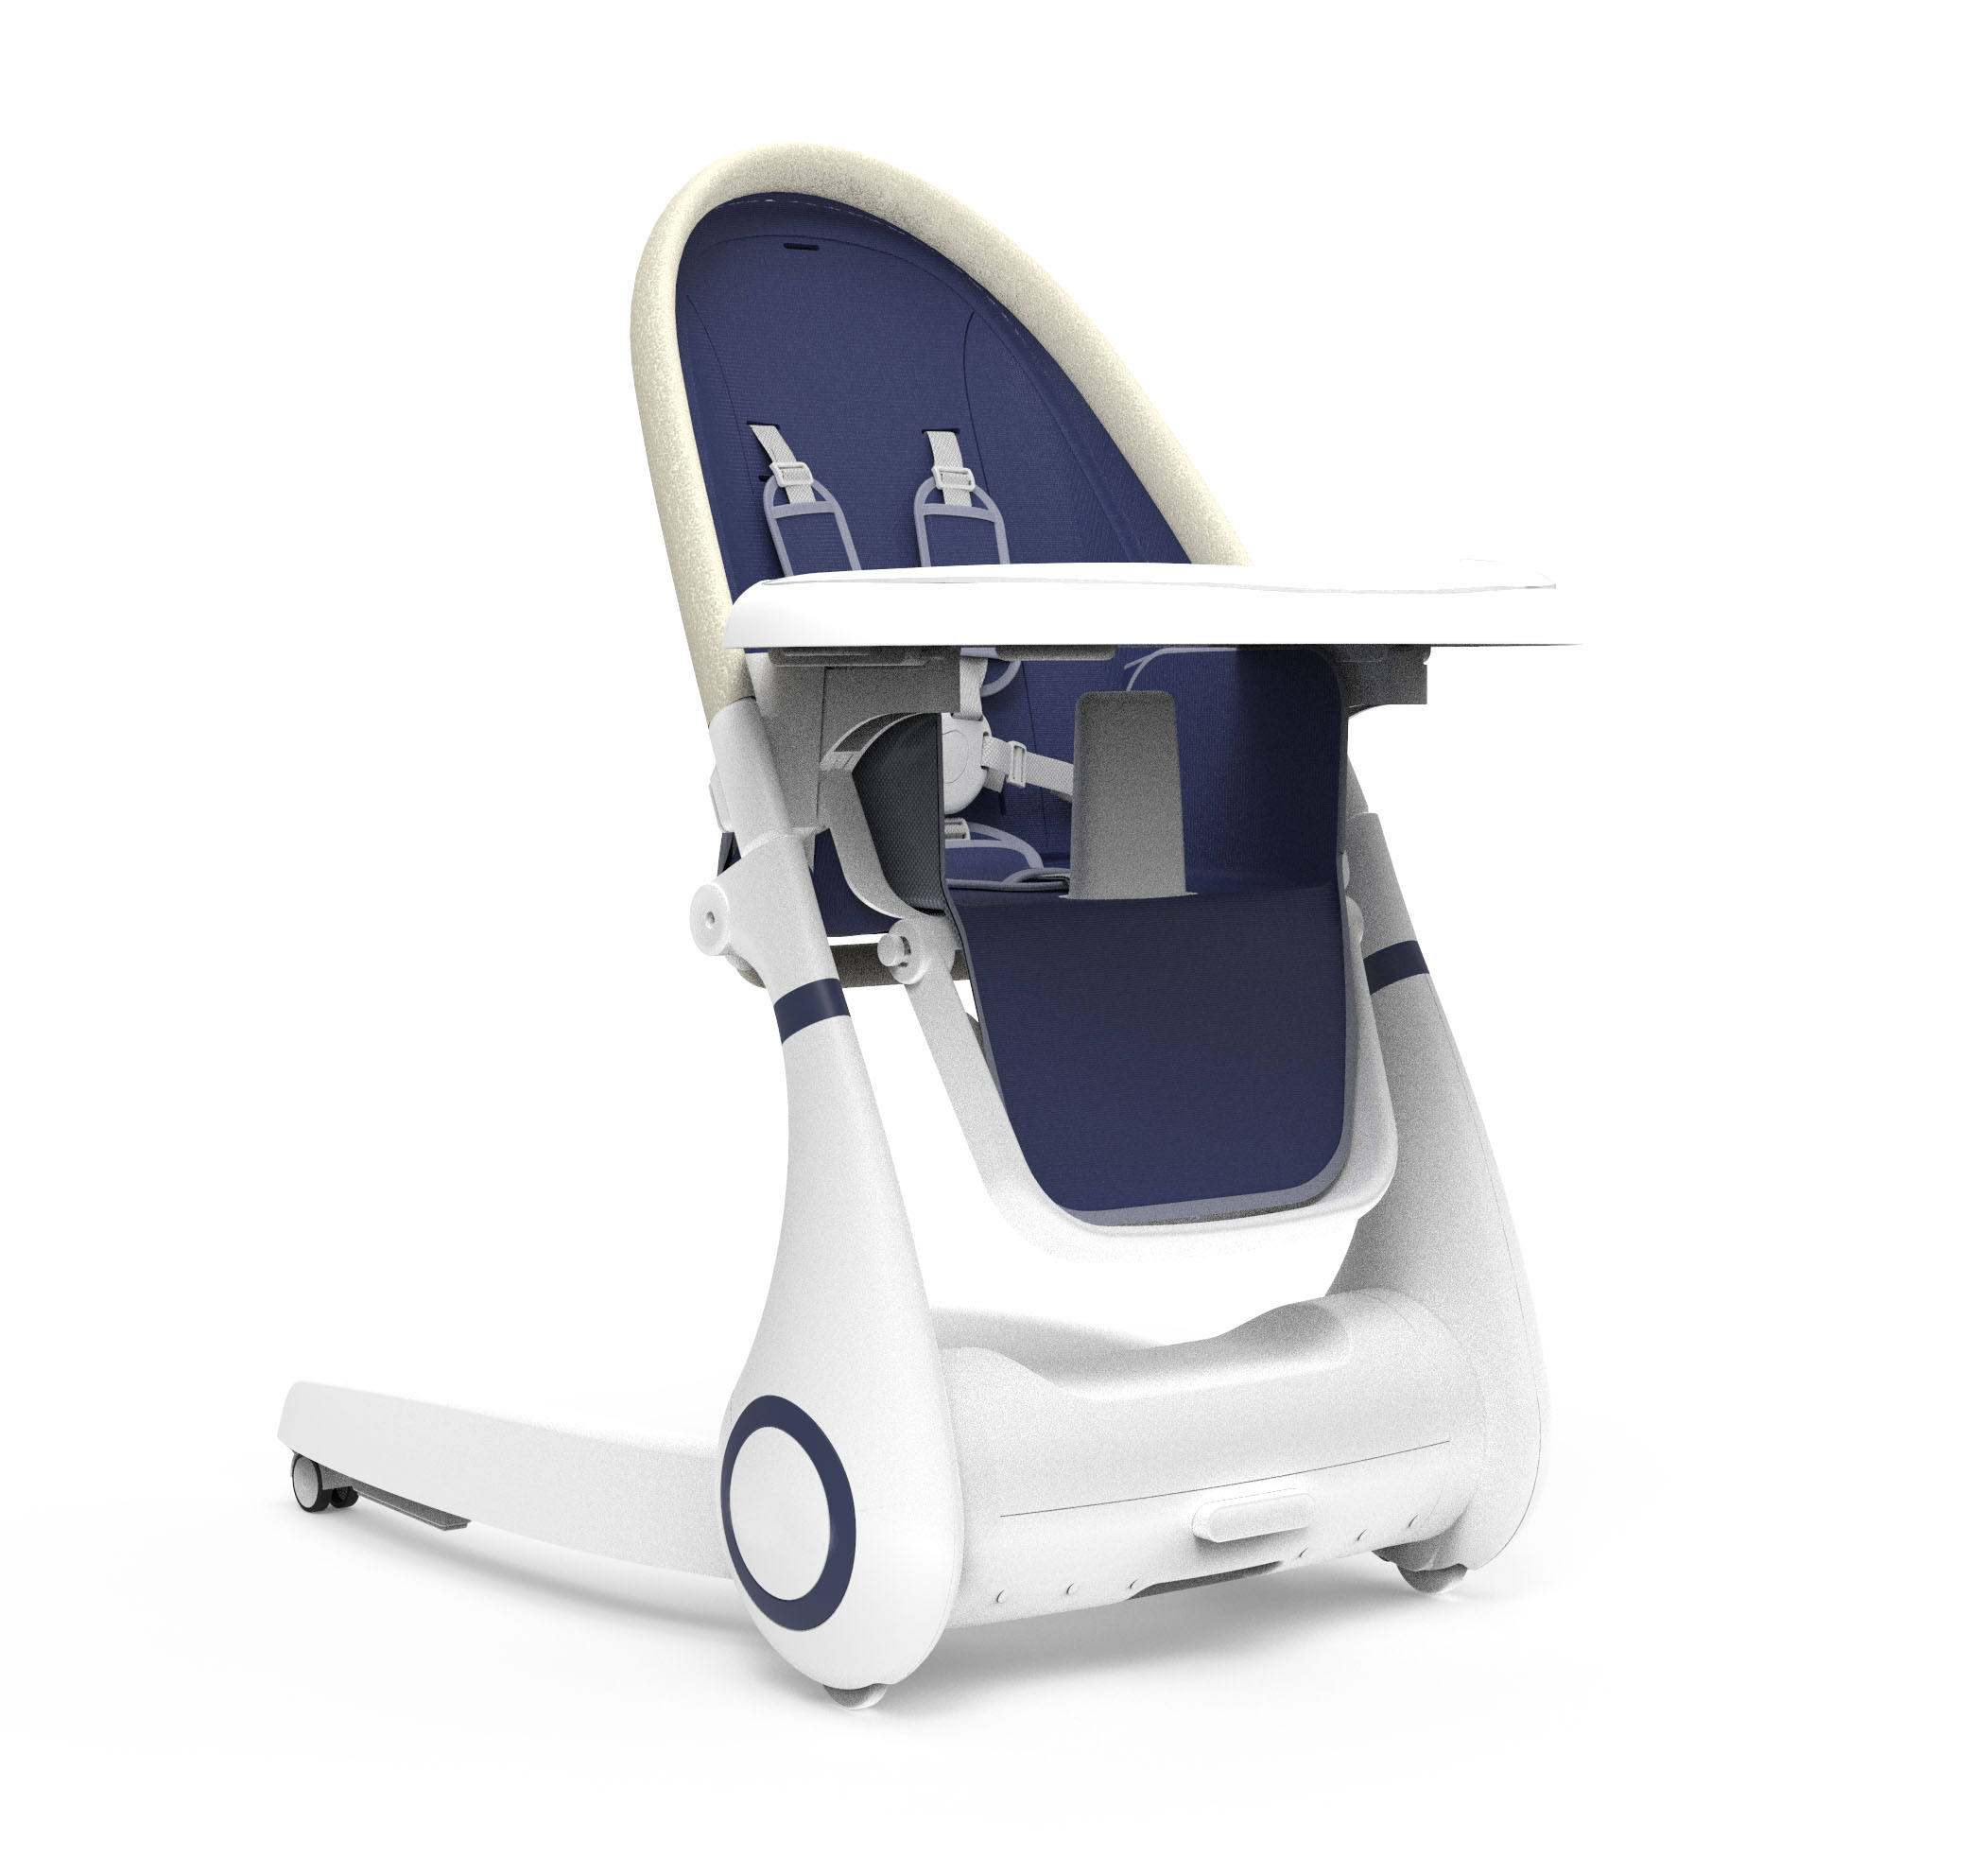 2020 New design baby high chair 4 in 1 plastic feeding baby food chair multi-functional baby high chair